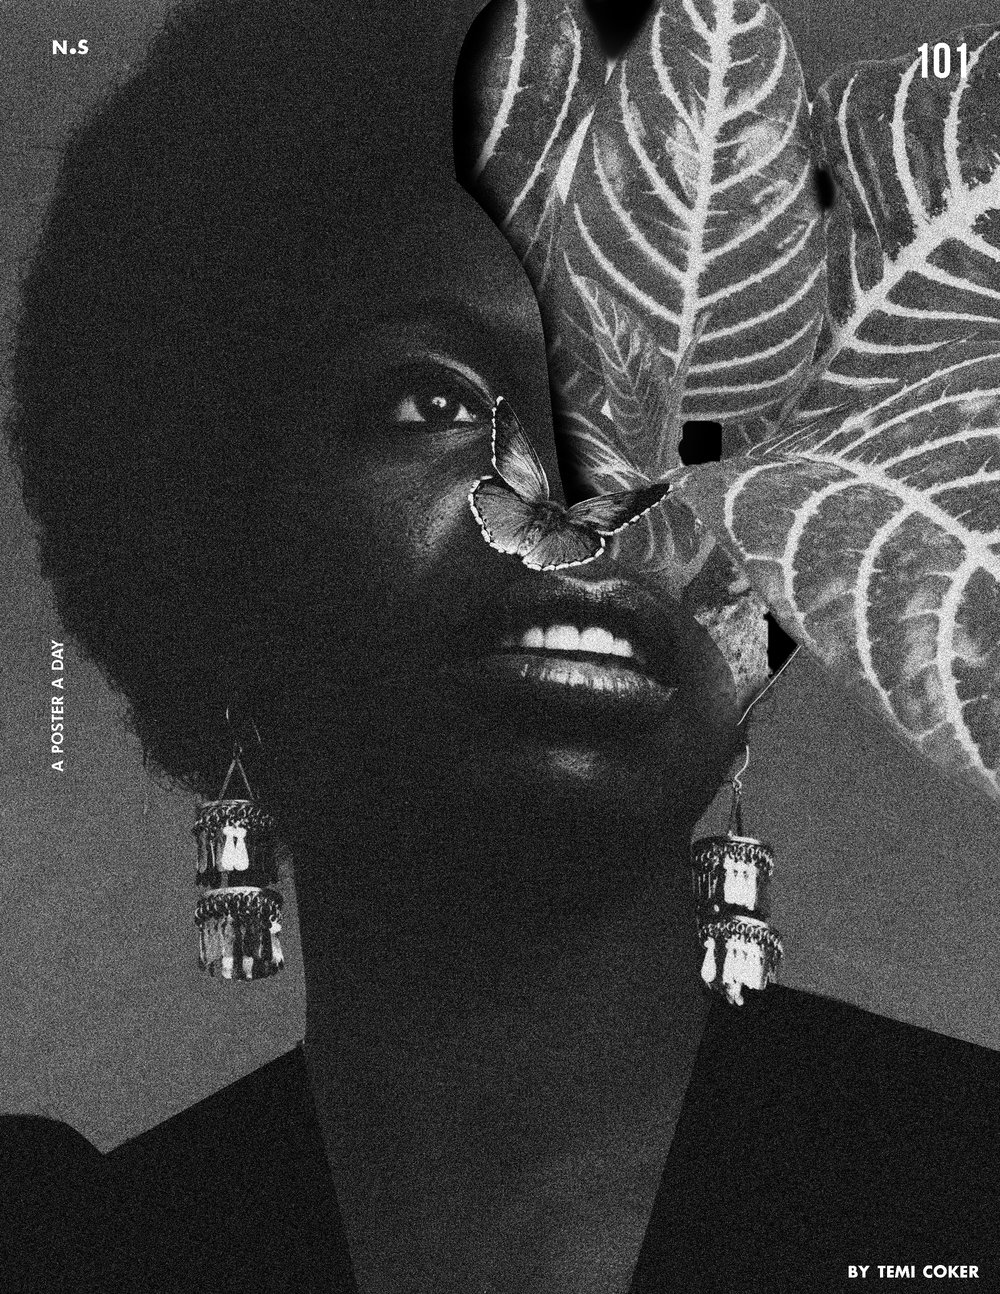 - Poster 101:Nina Simone is an amazing singer and someone I admire. I began listening to her during my designing process and from that experience I designed this picture of her for my series.  When I think of Nina Simone, I think of growth, freedom, life and I tried to convey those feeling in this image..